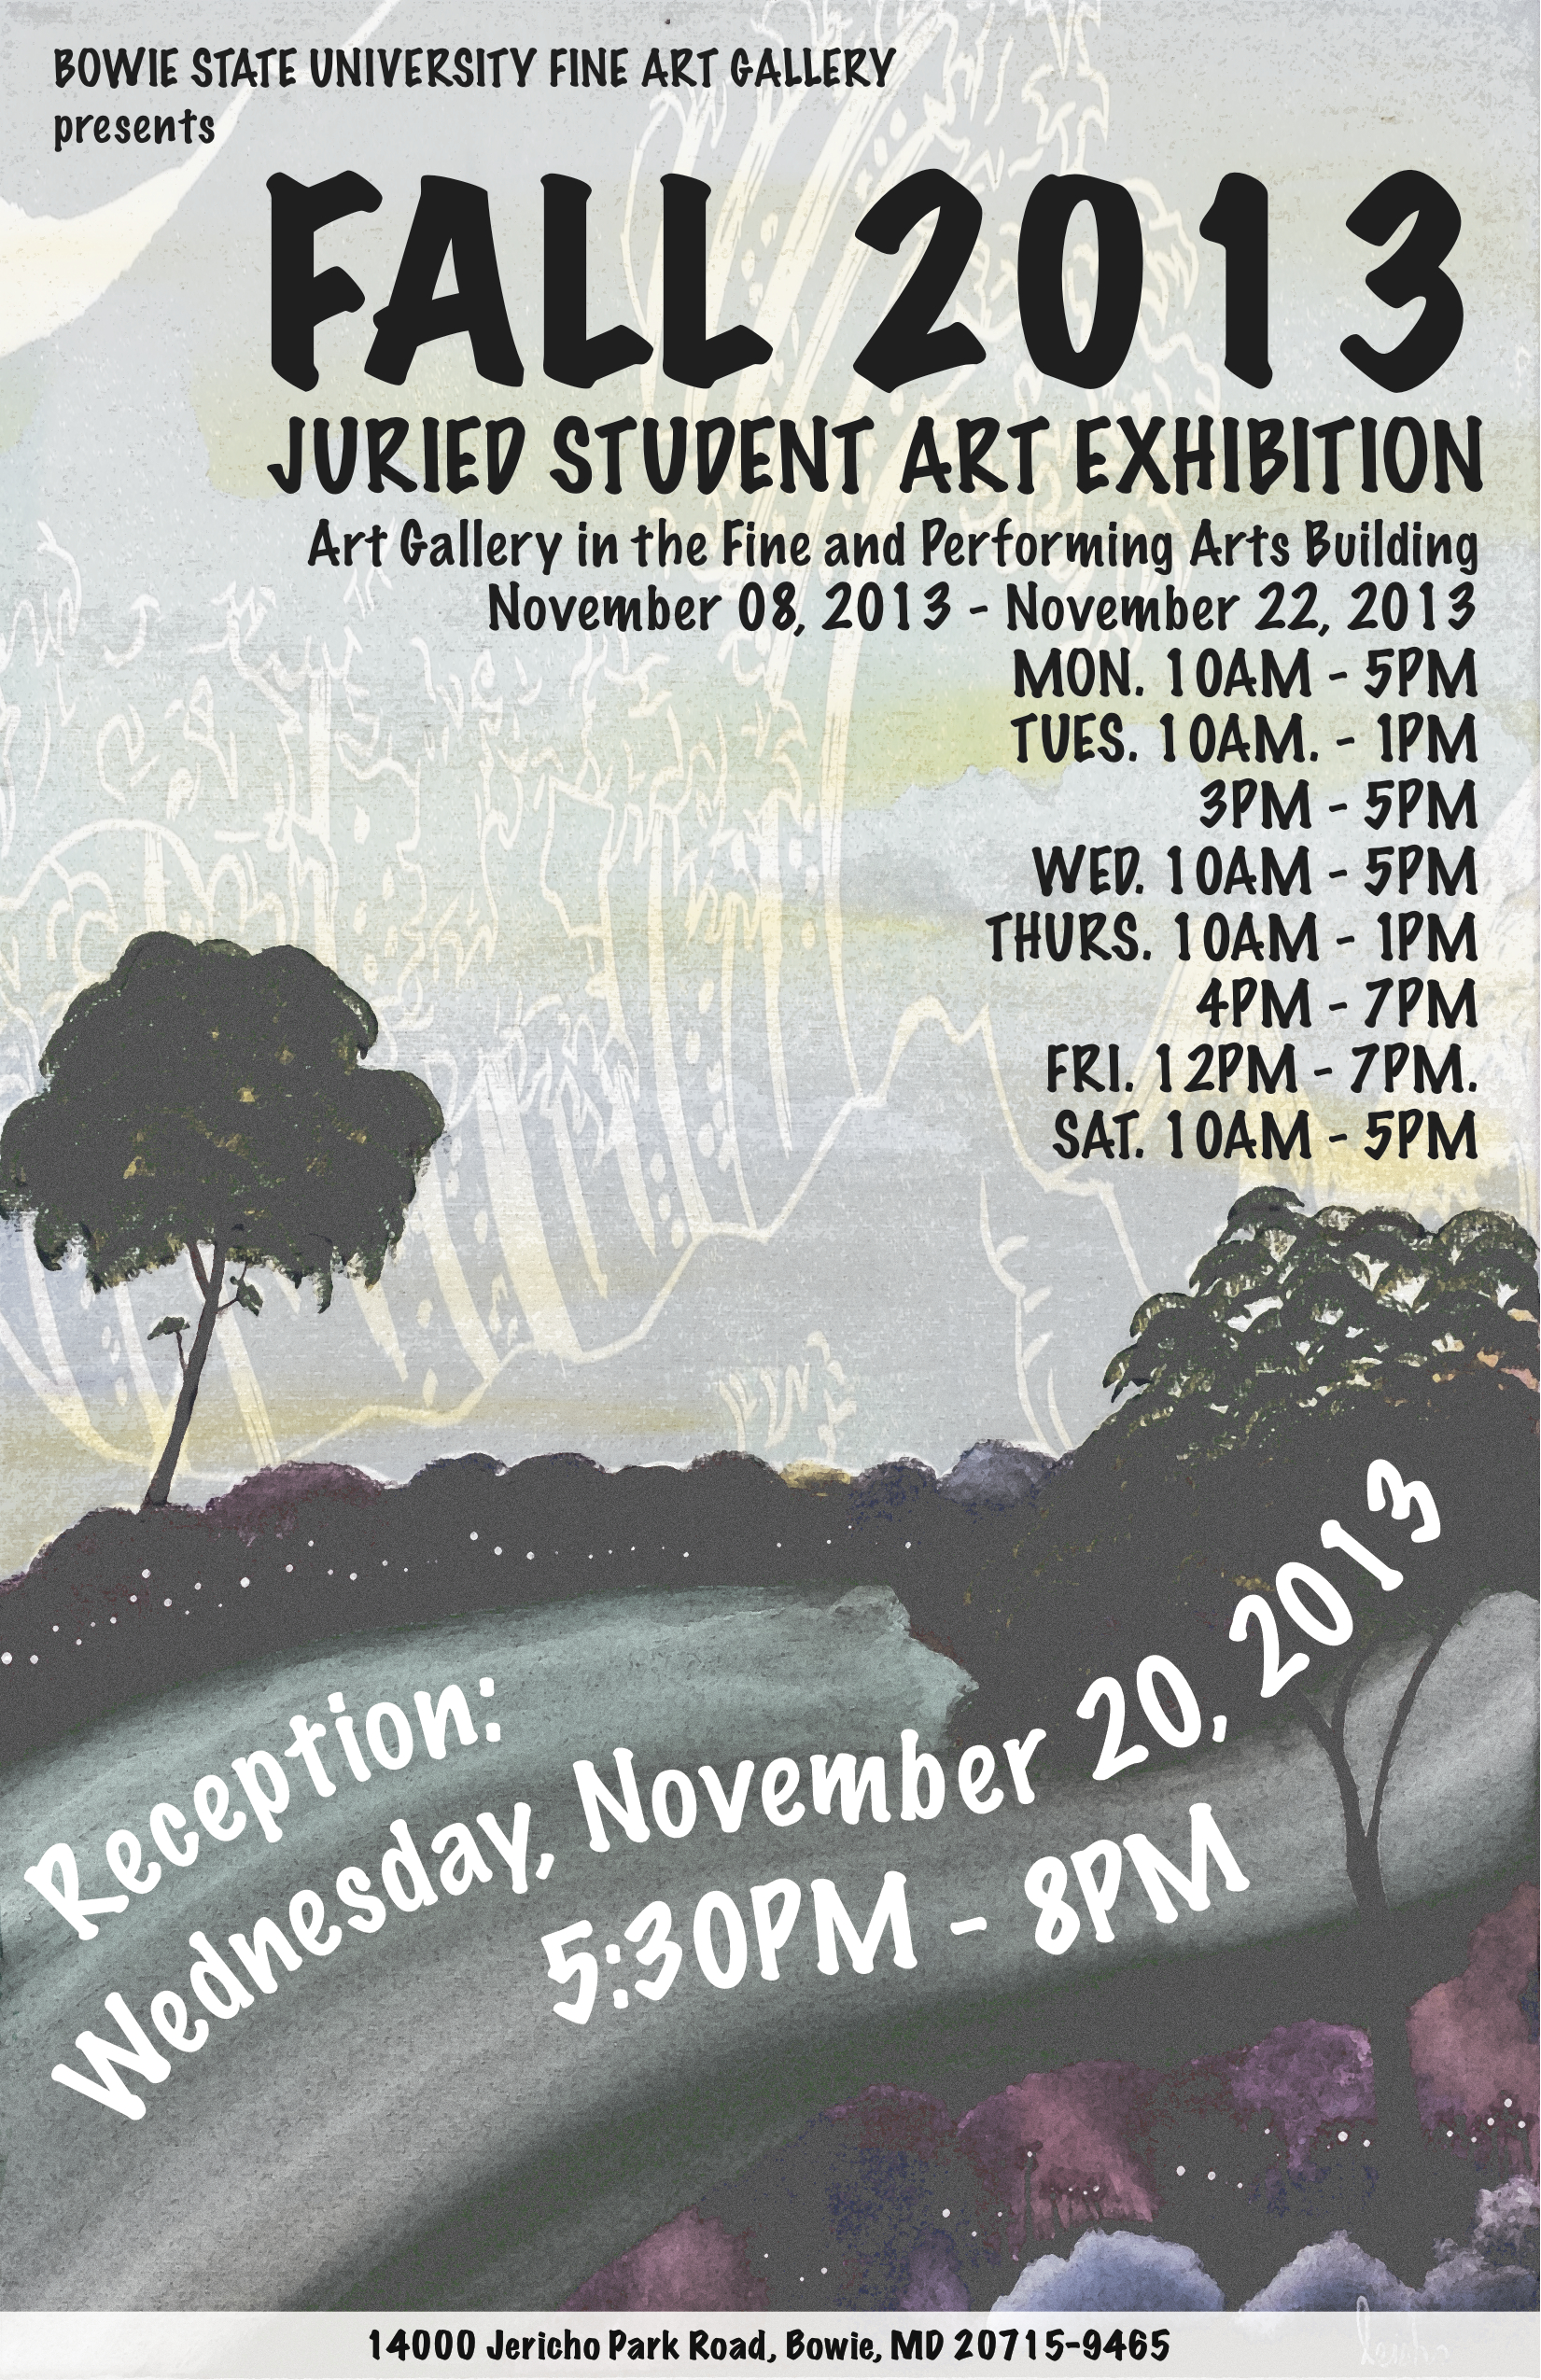 Student Art Exhibition Flier